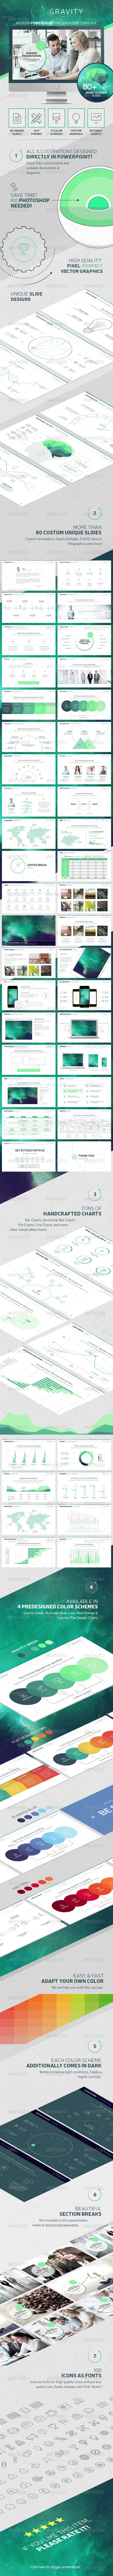 GraphicRiver Gravity PowerPoint Modern Presentation Template 8050884